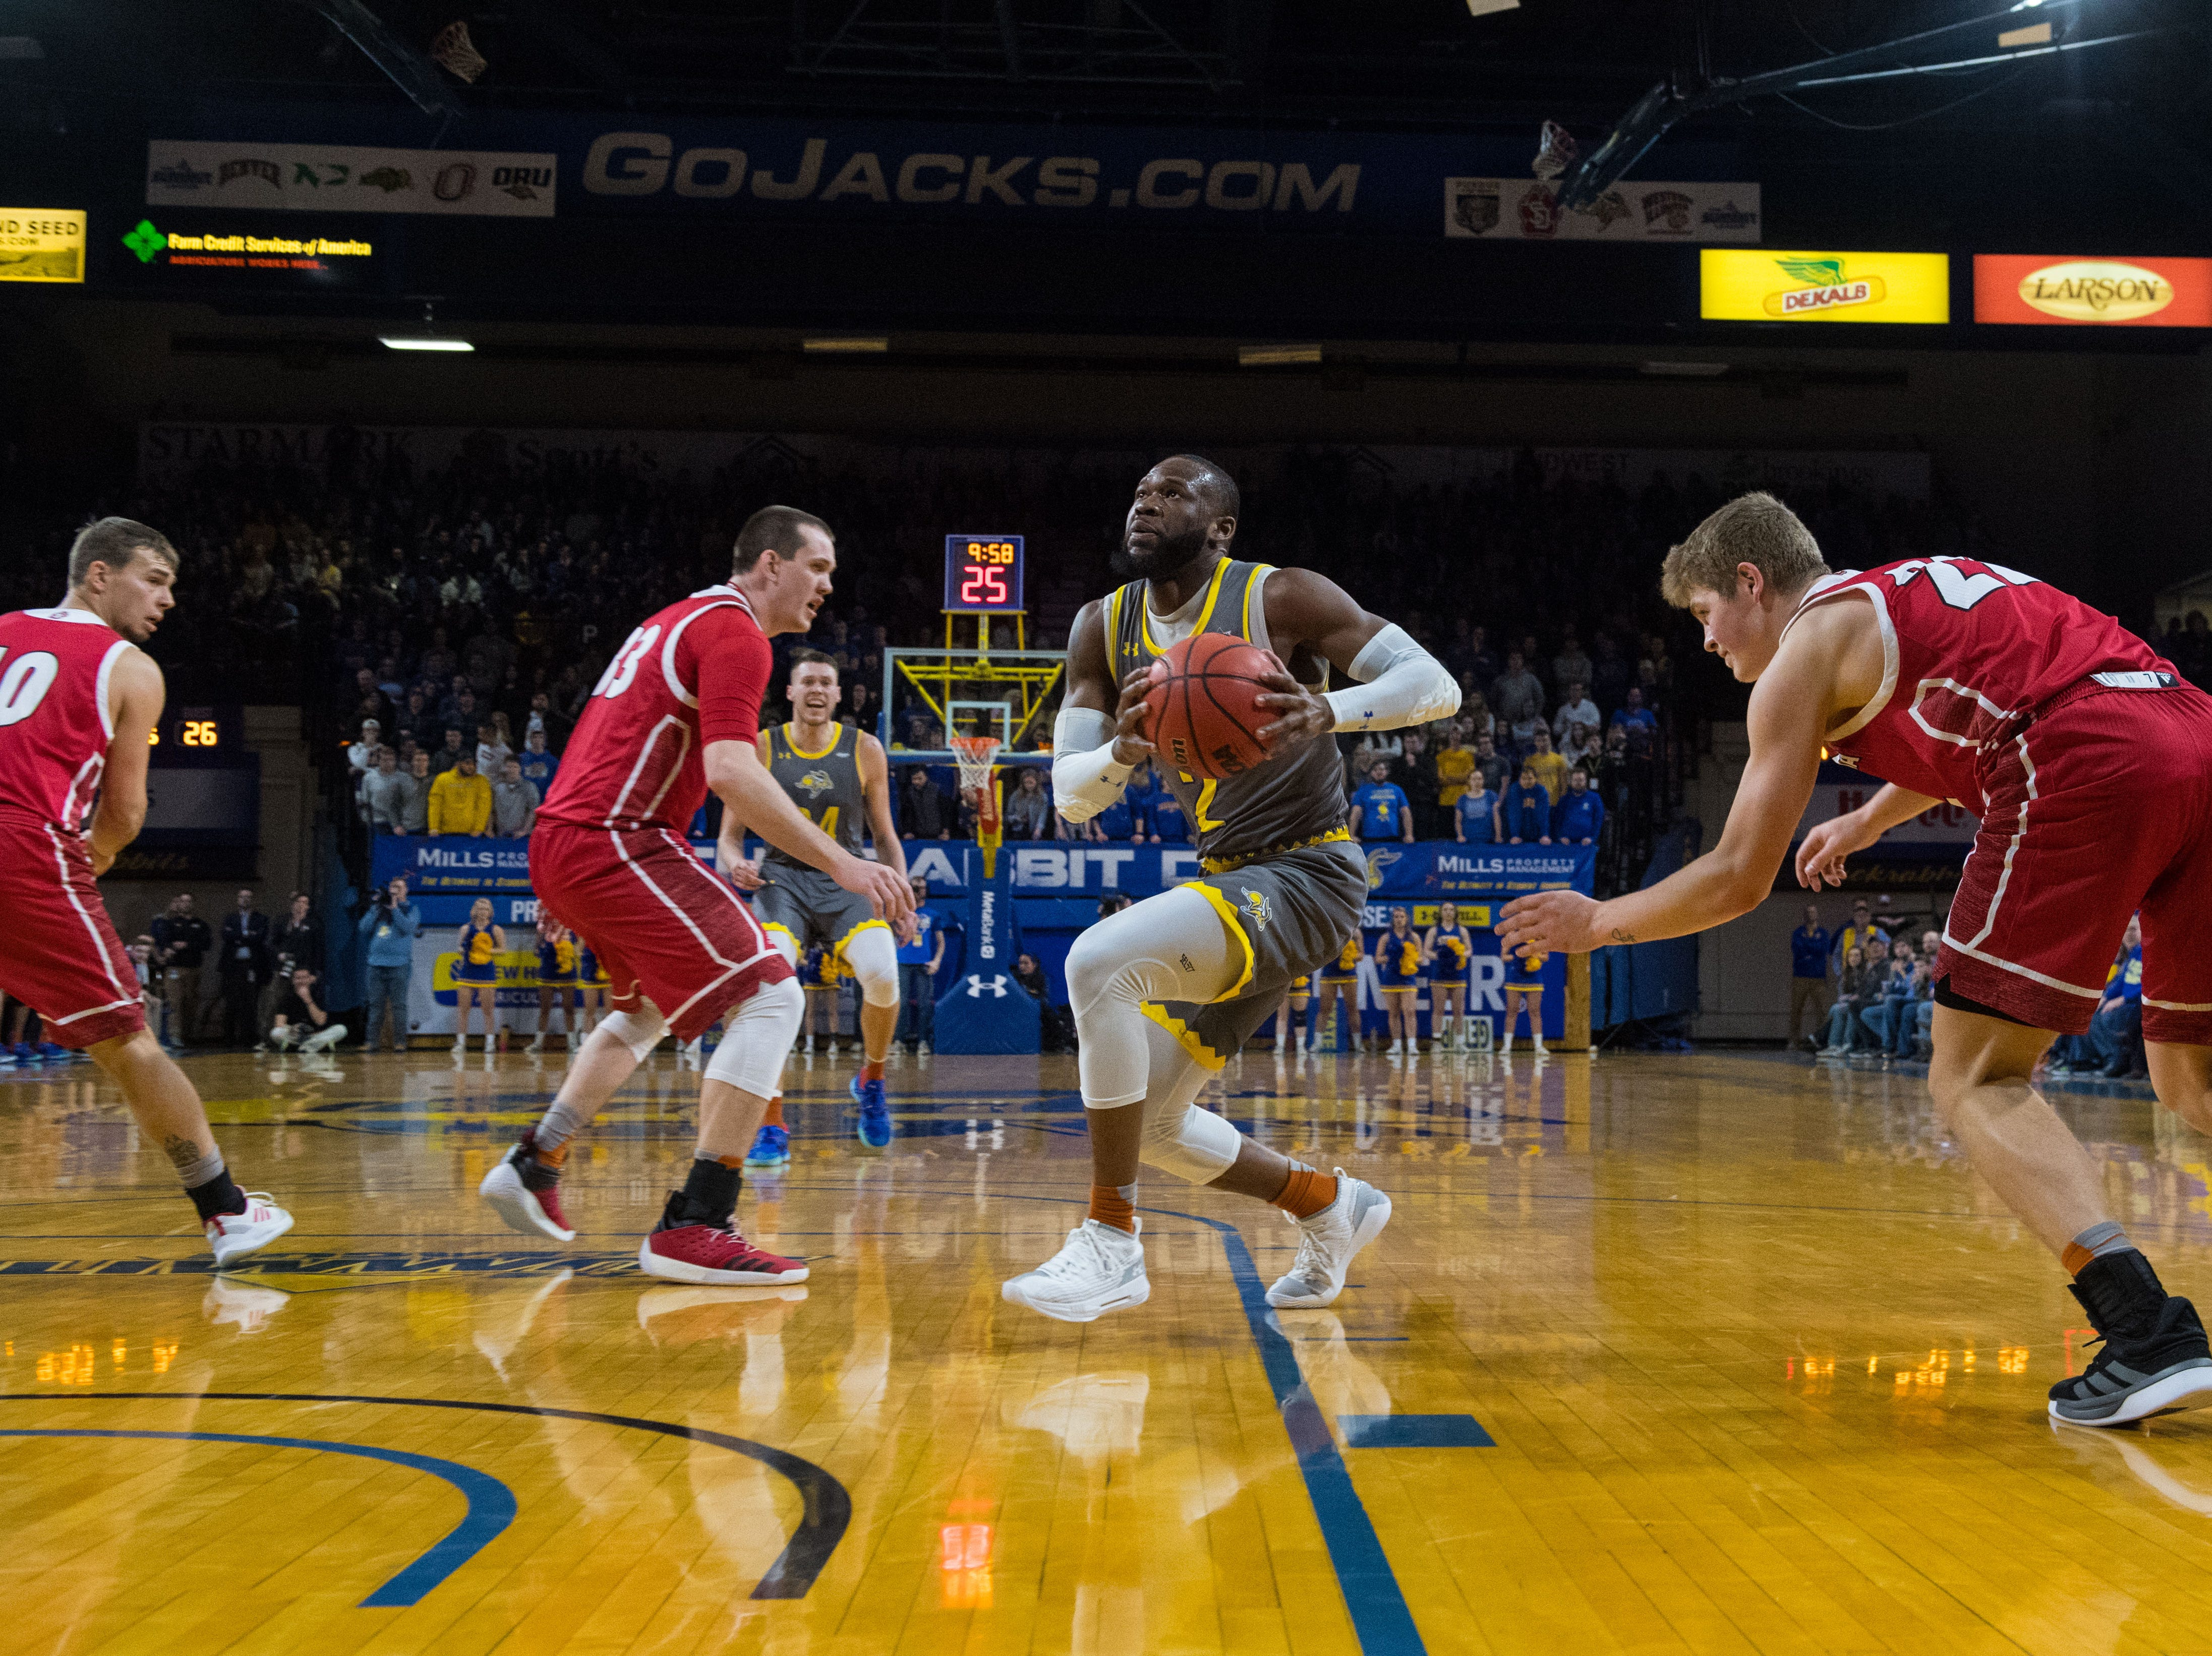 SDSU's Tevin King (2) dribbles the ball past USD players during a game, Saturday, Feb. 23, 2019 in Brookings, S.D.